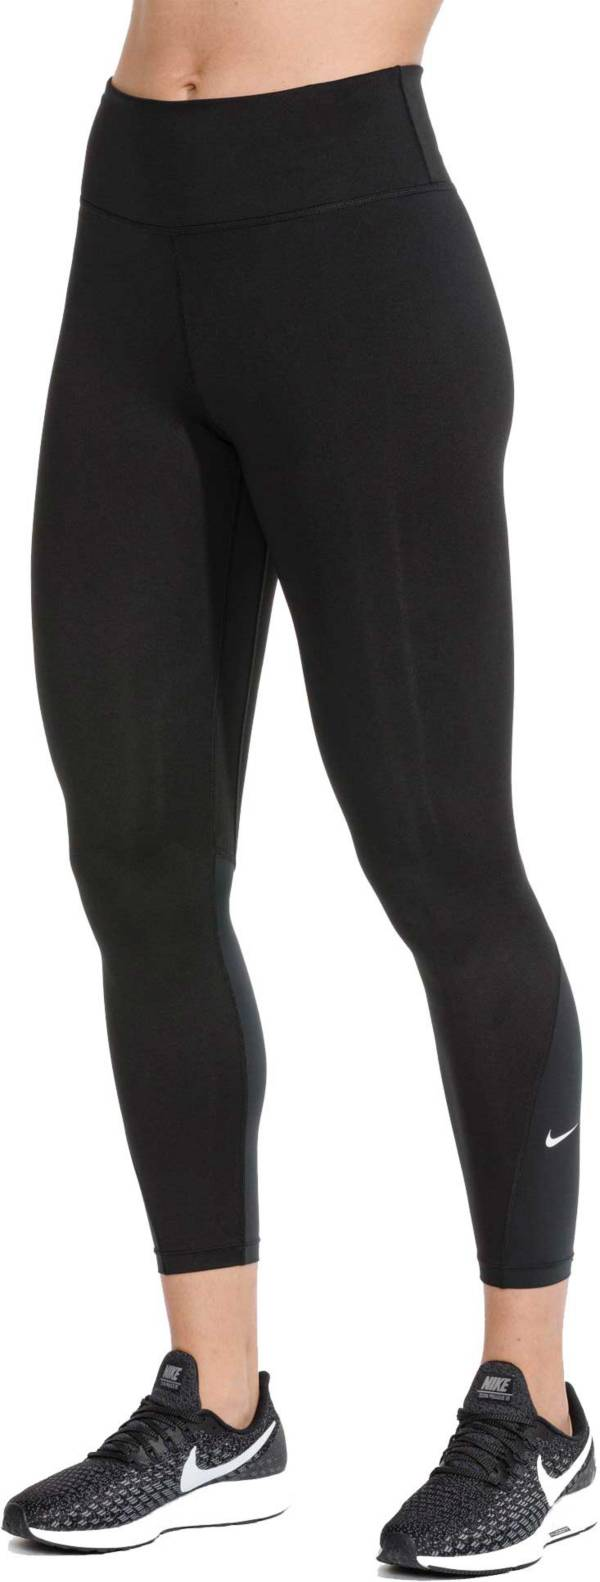 Nike One Women's 7/8 Tights product image